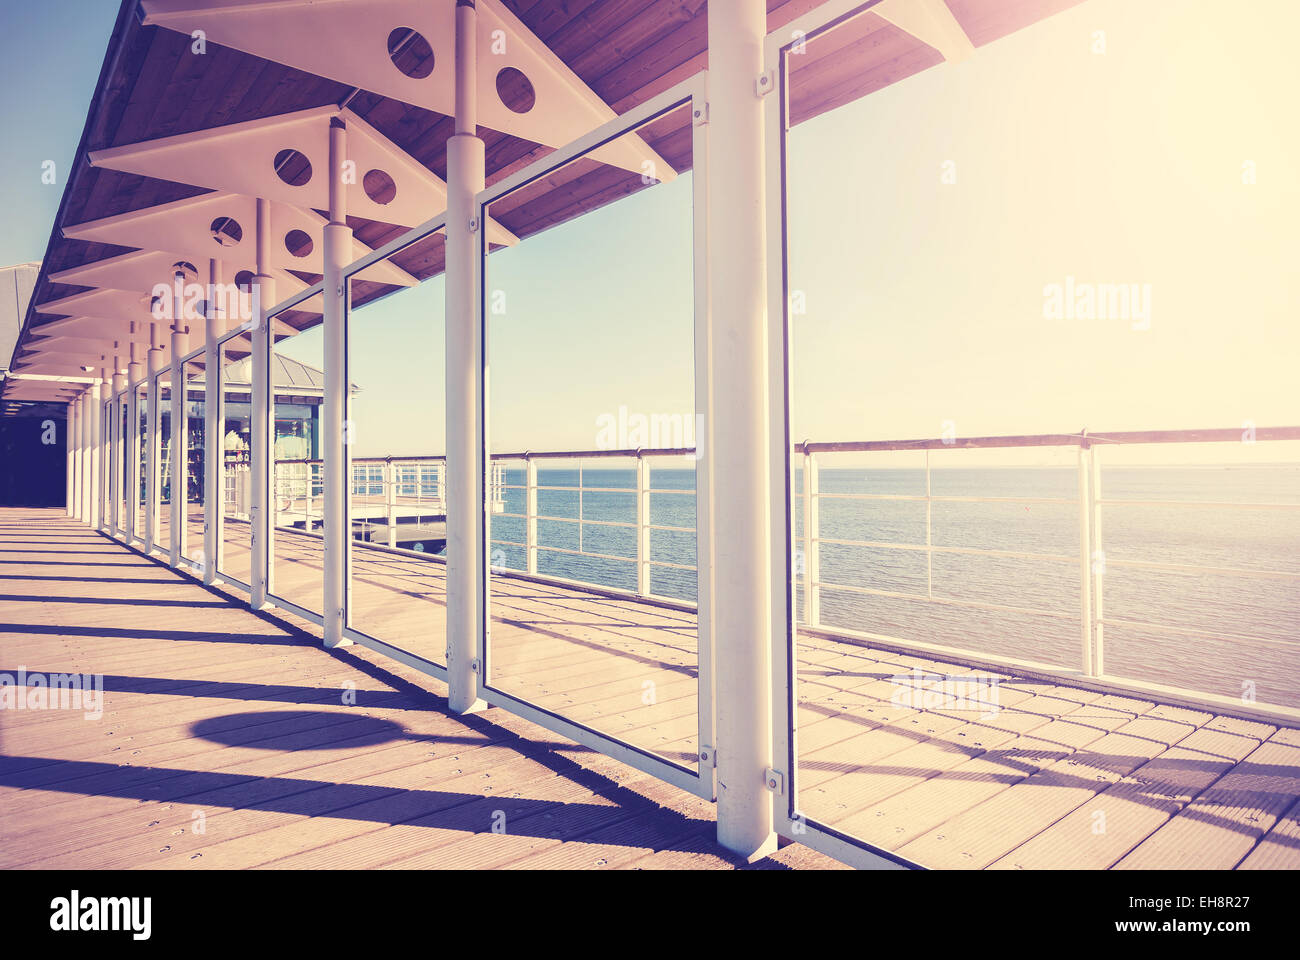 Vintage toned picture of veranda by the sea. - Stock Image